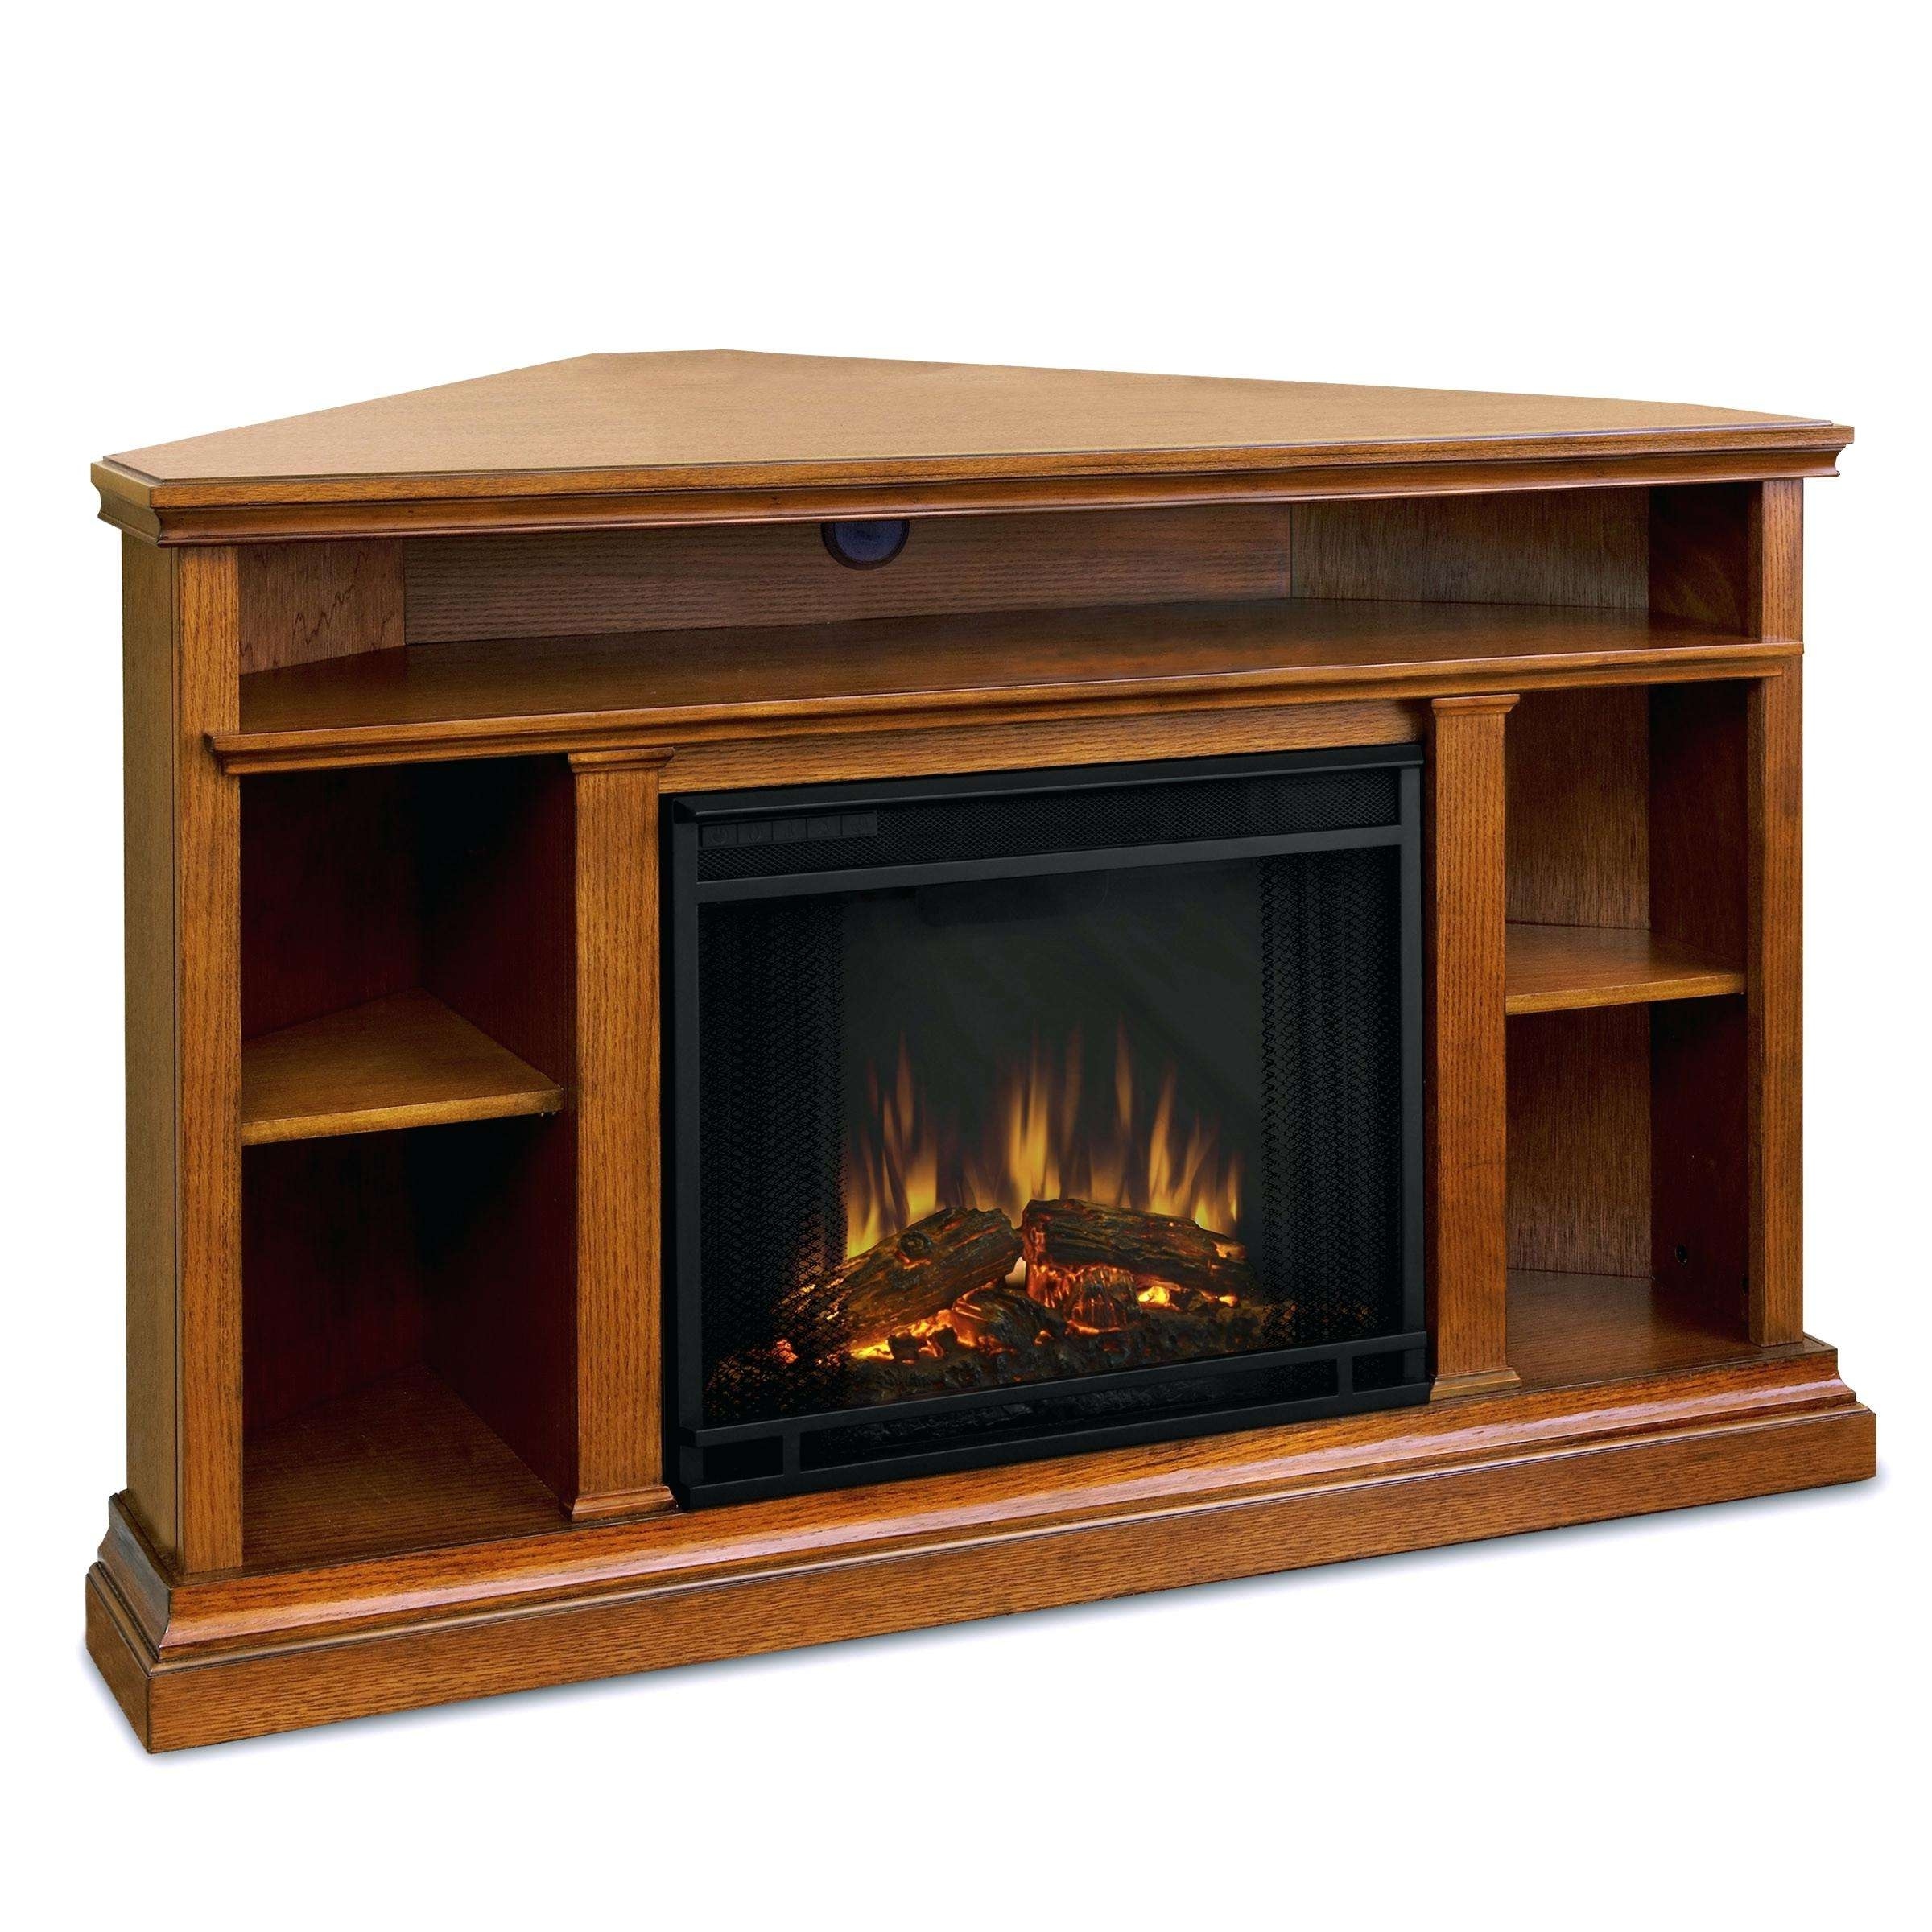 Furniture : Art Van Furniture Tv Stands Design Ideas Modern Classy Pertaining To Classy Tv Stands (View 17 of 20)